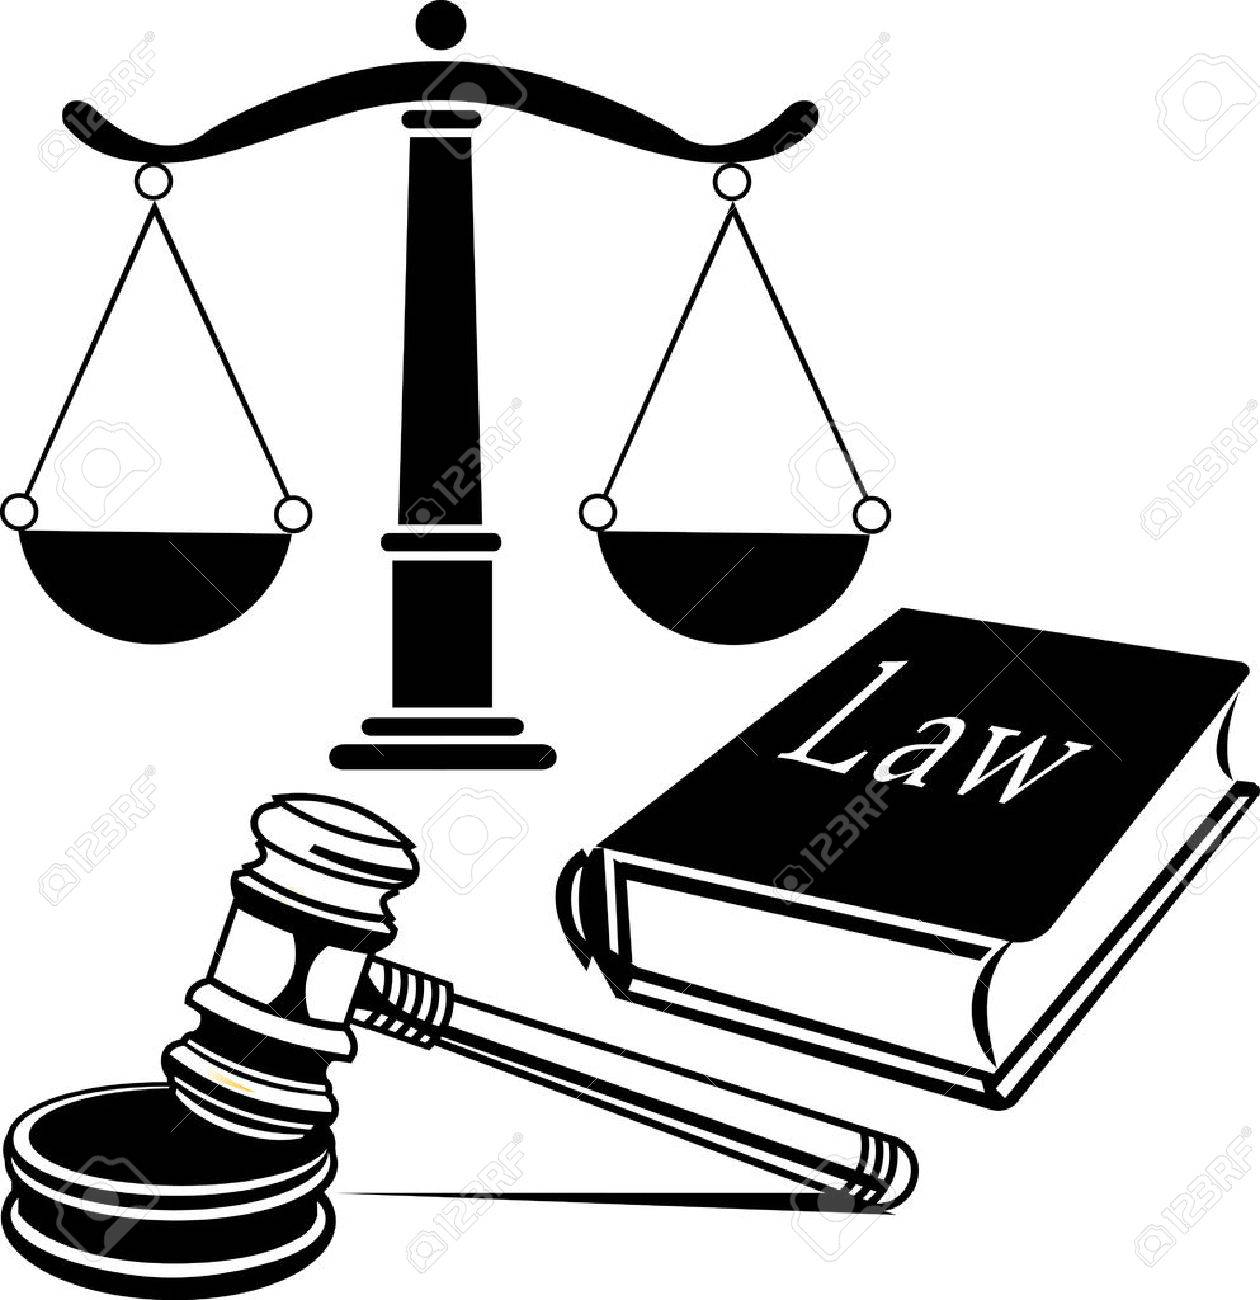 Law firm justice scale.